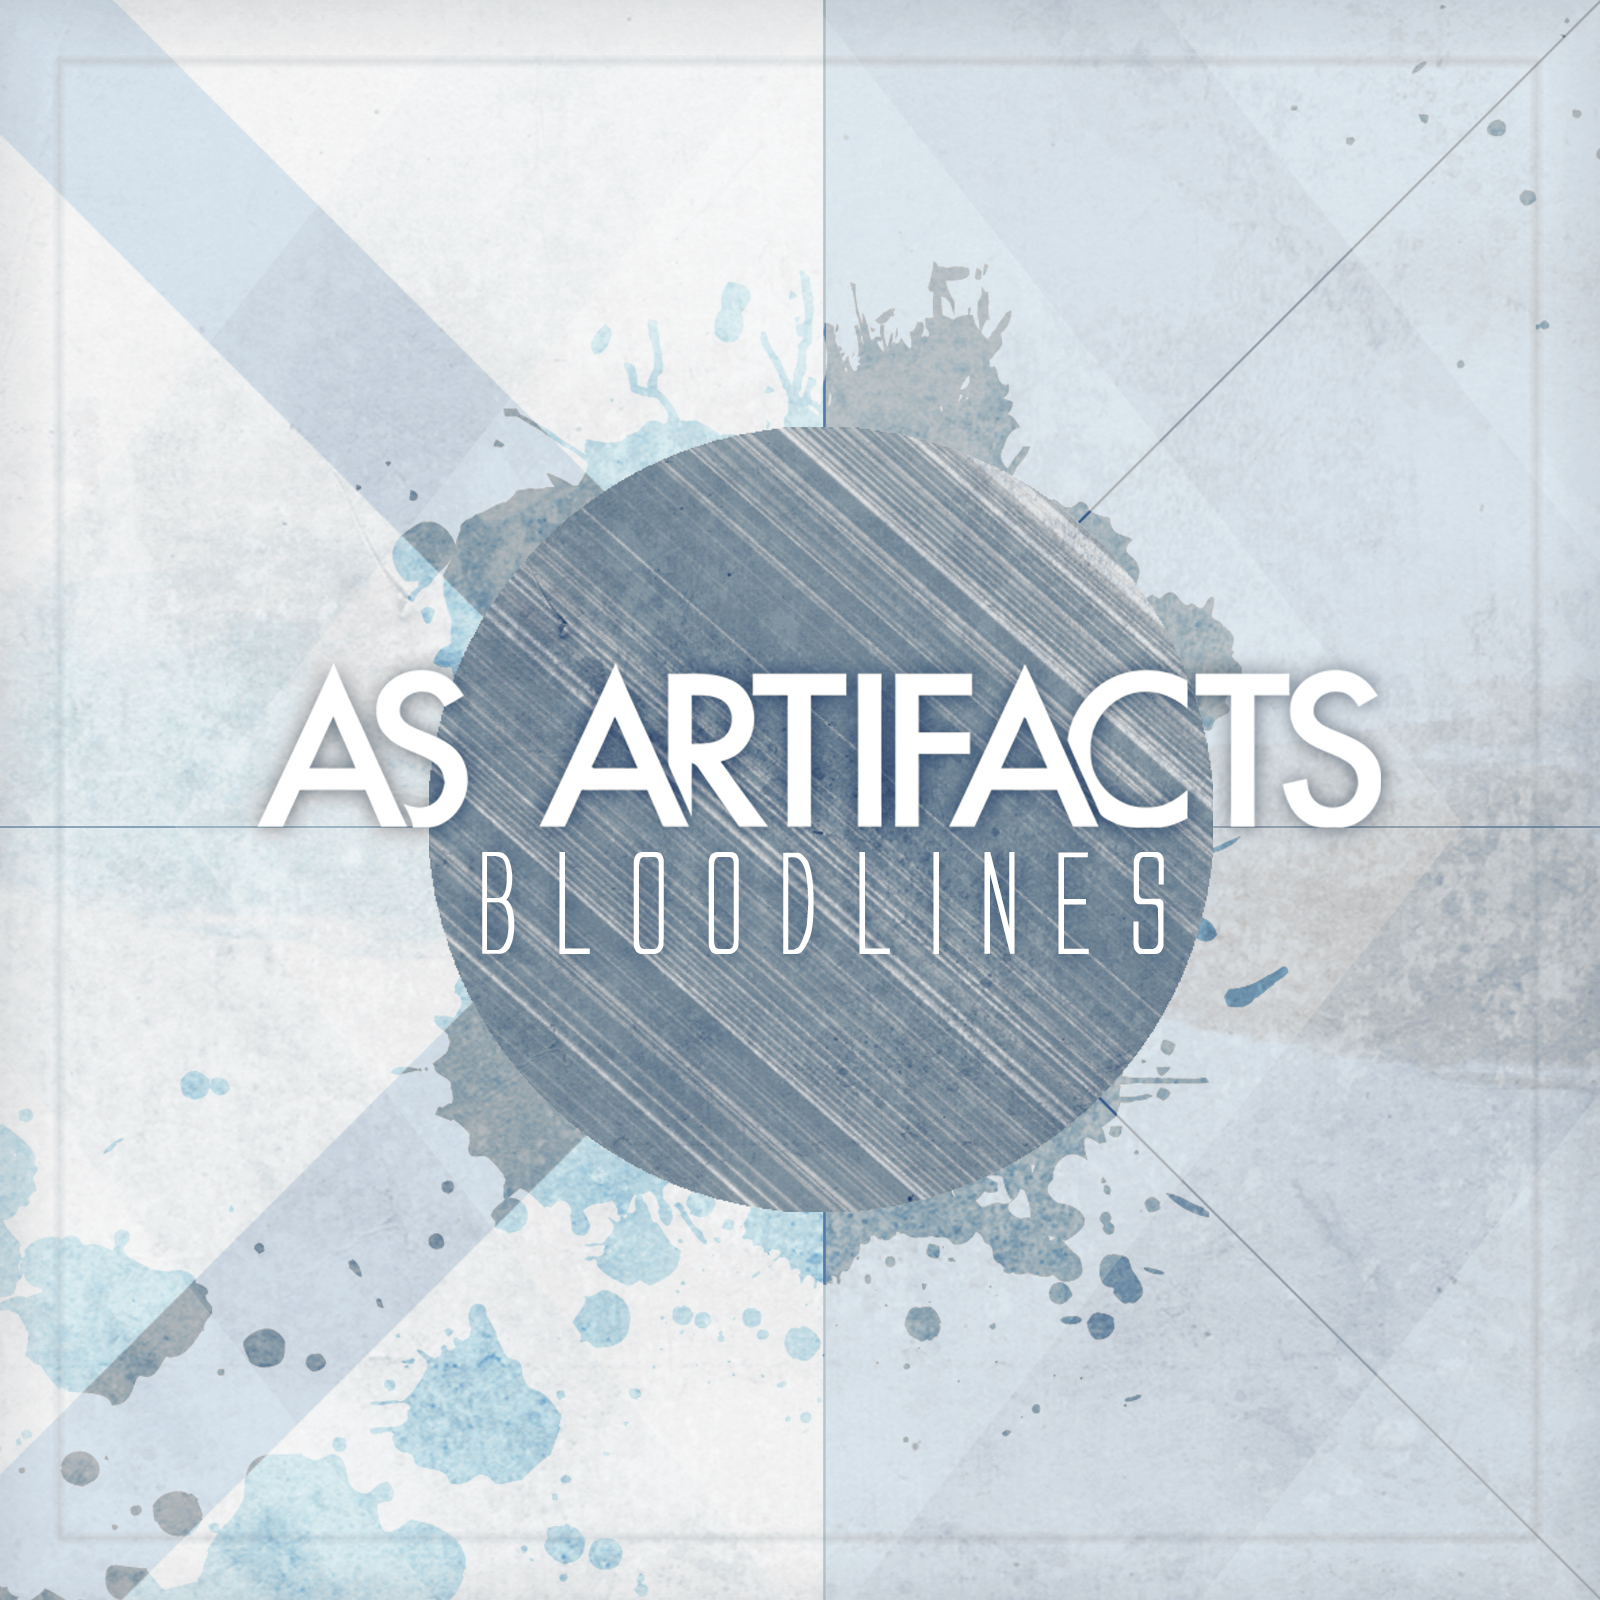 As Artifacts - Bloodlines [single] (2013)